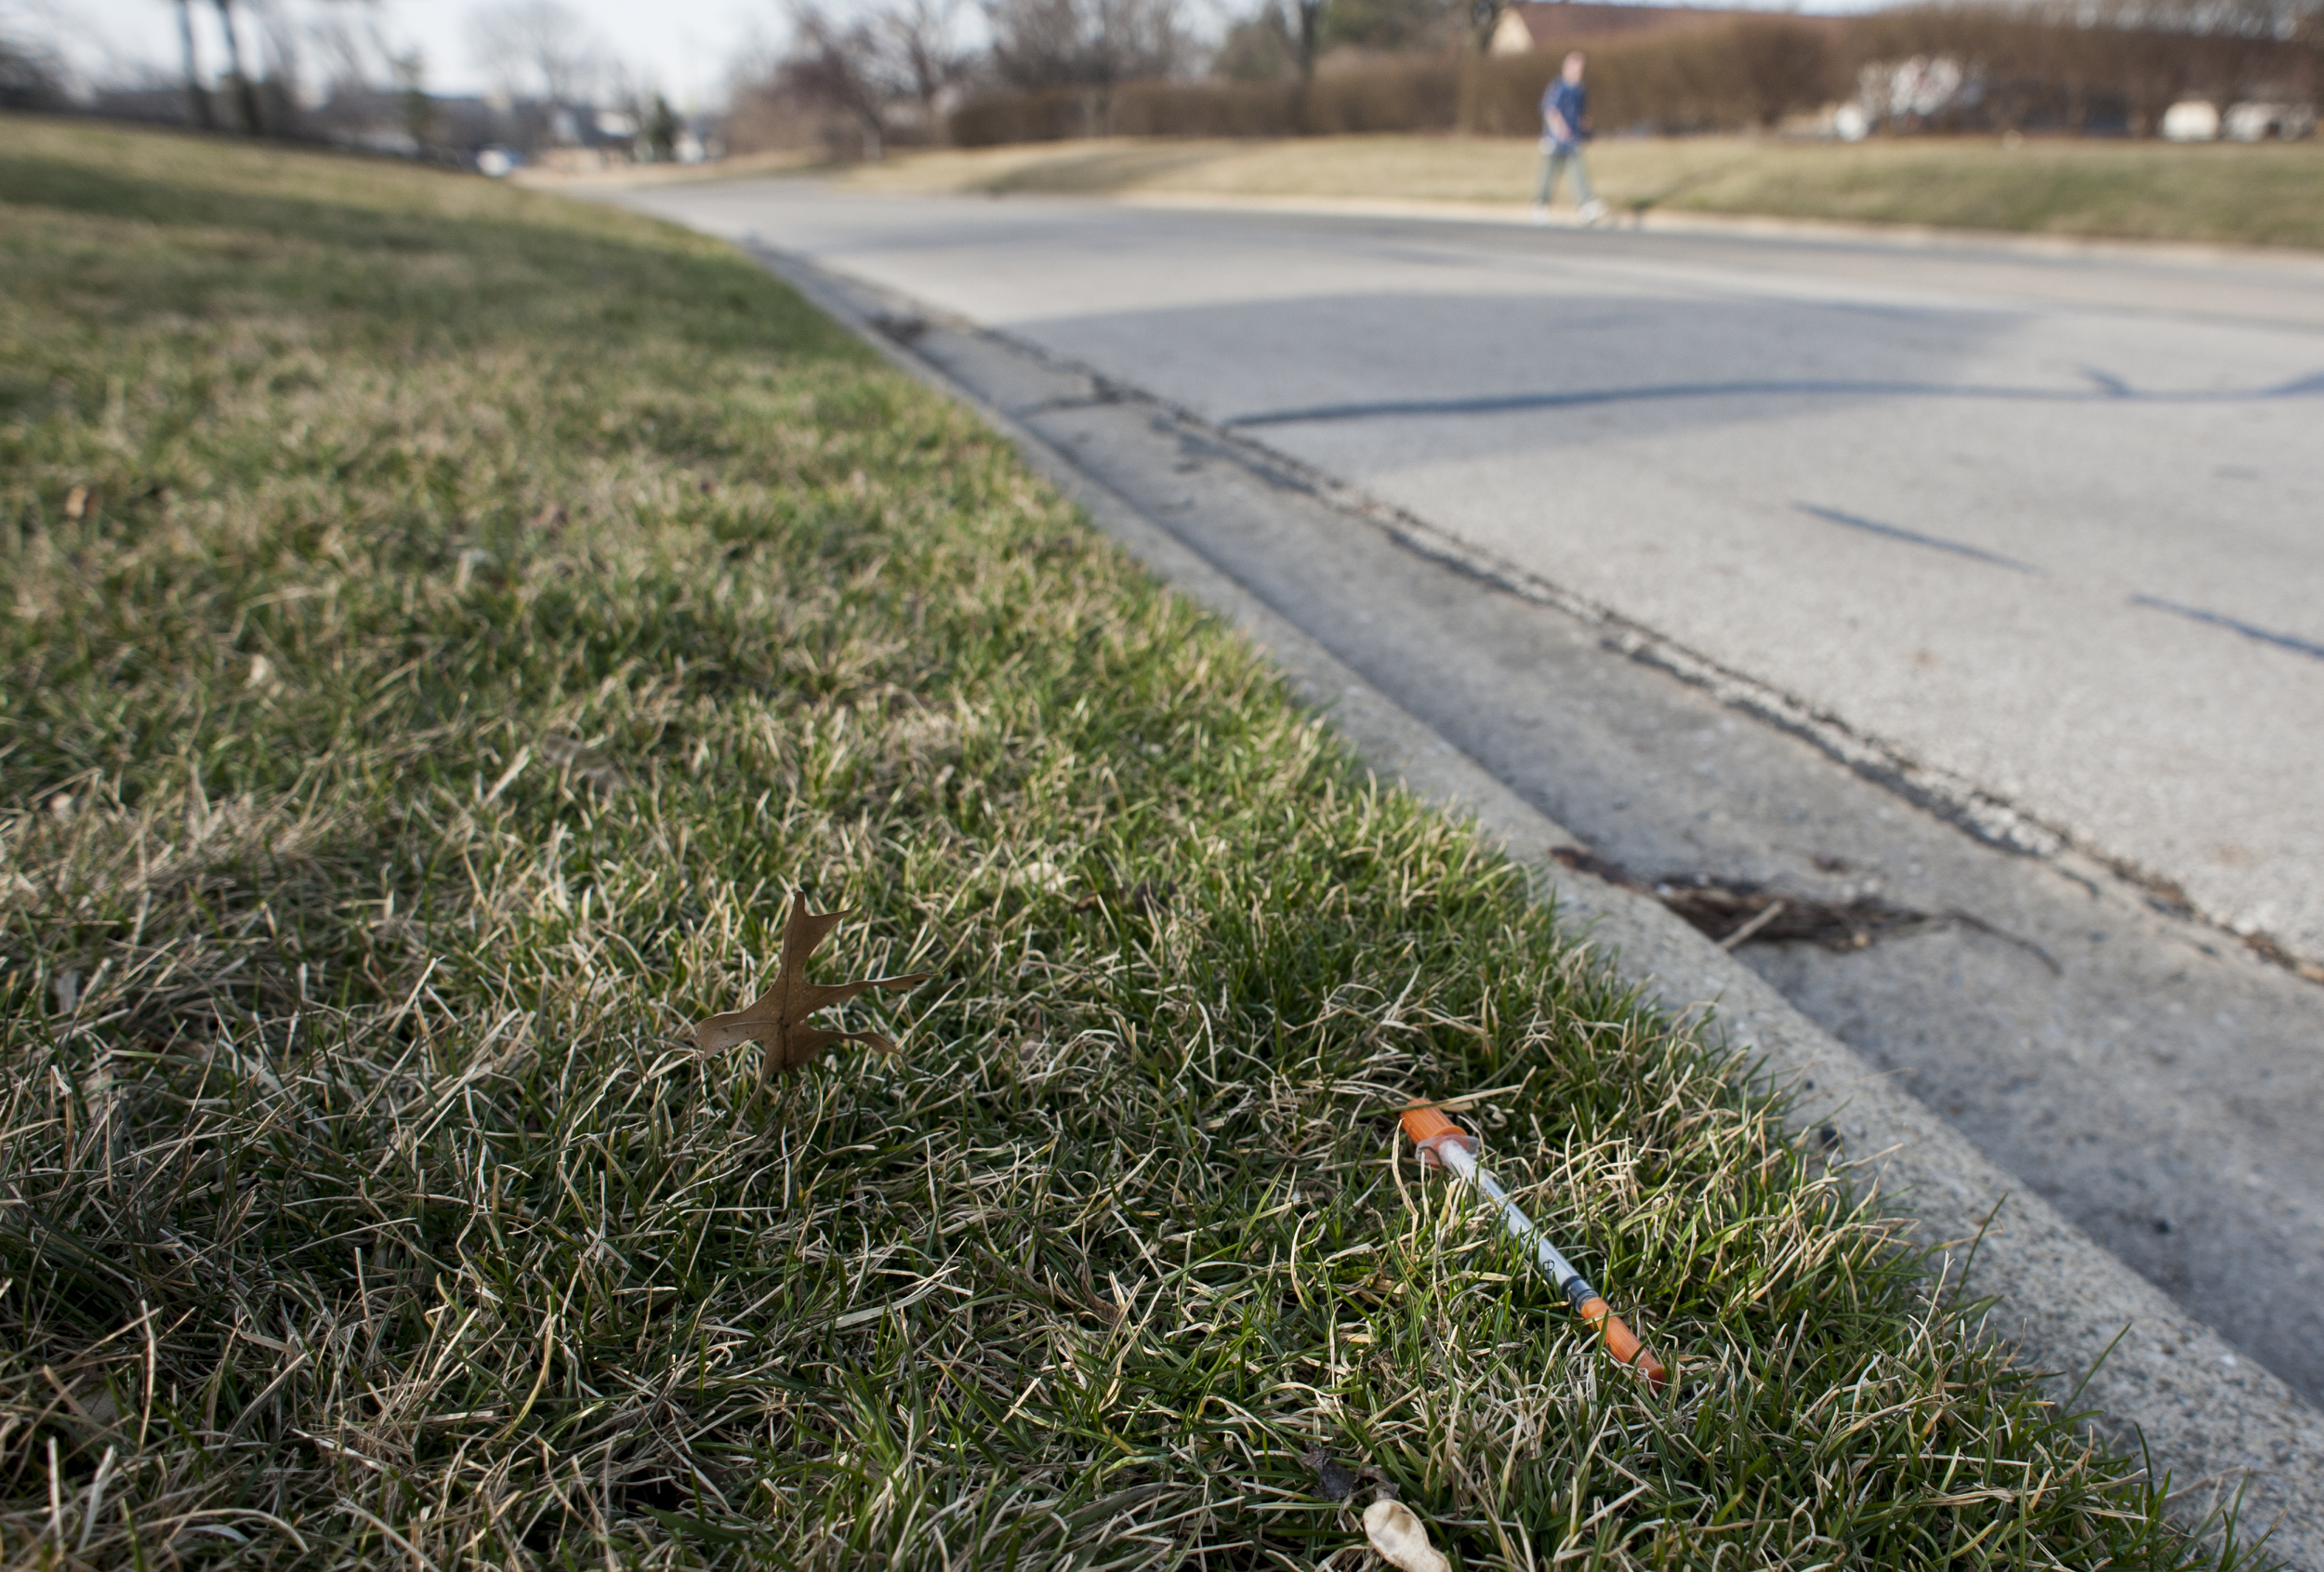 Another needle lies discarded on the side of the road in a suburb. Used needles pose a public health risk to those uninvolved with the use and sale of drugs, inlcuding children and pets.